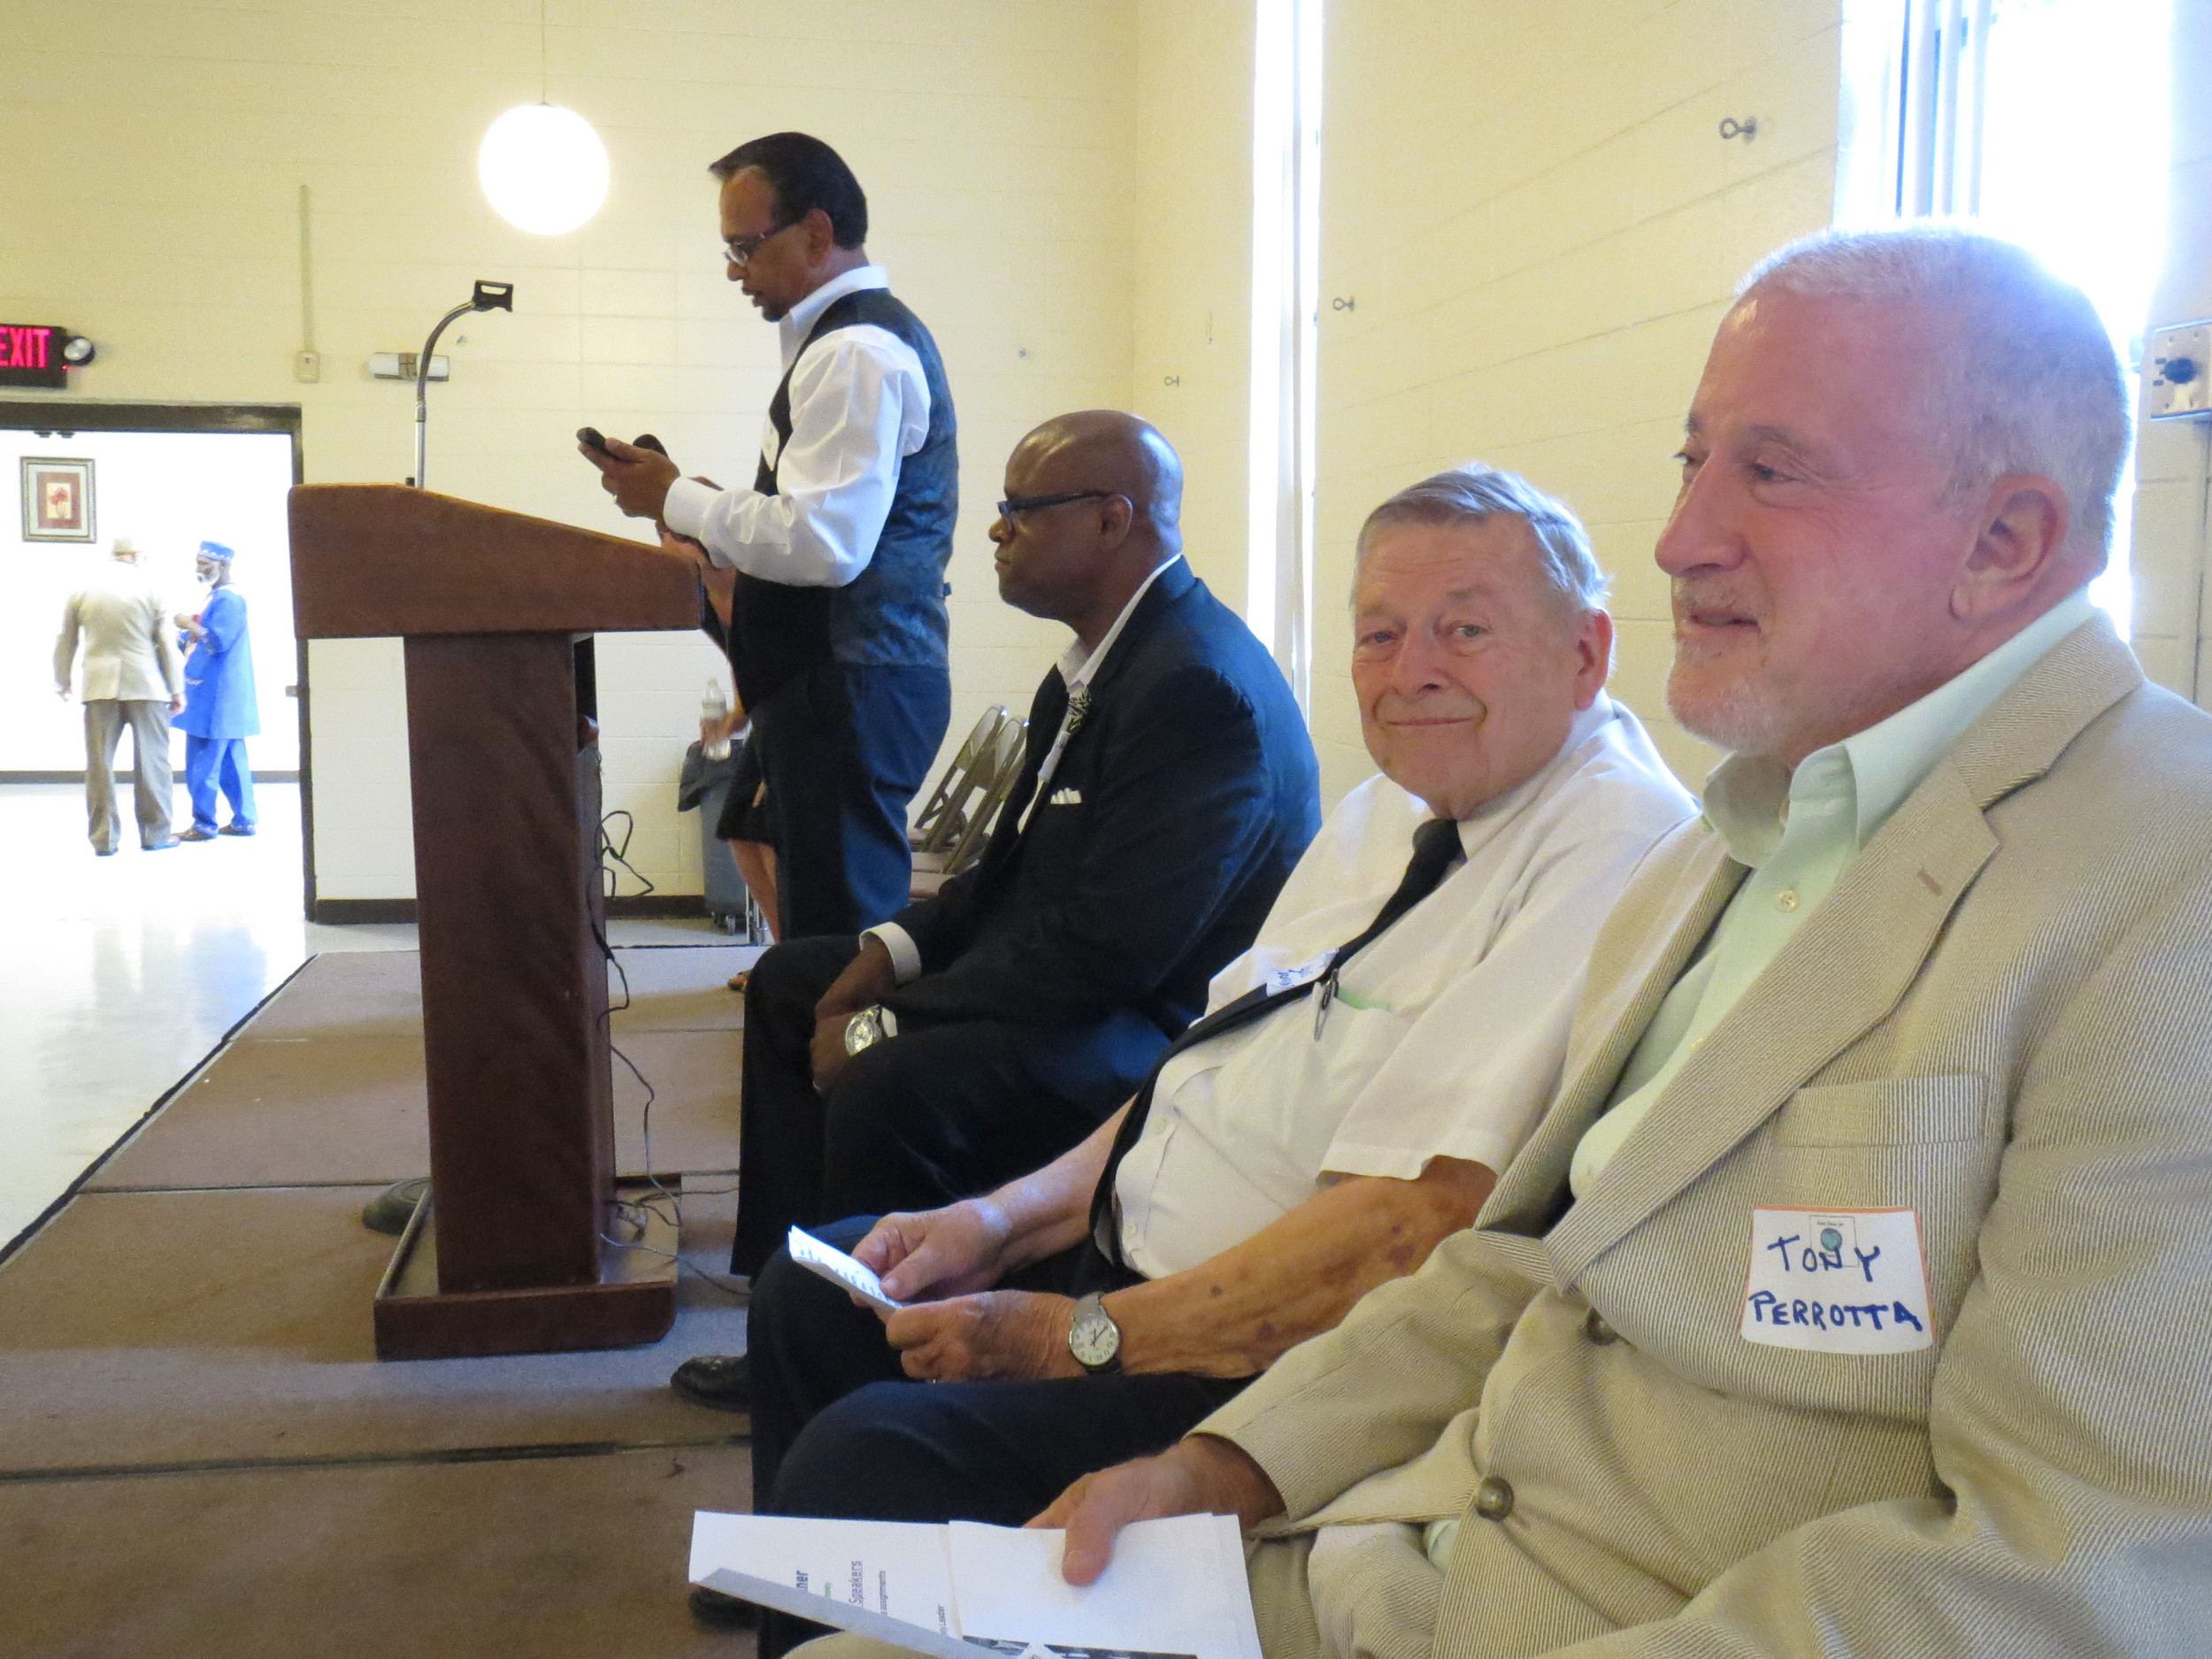 Unity Table Dinner organizer Nassim Baksh takes the podium at Saturday's event at the Cartersville Civic Center; from left to right are speakers the Rev. W.J.E. Coombs, the Rev. Louis Tonsmiere and Anthony Perrotta.